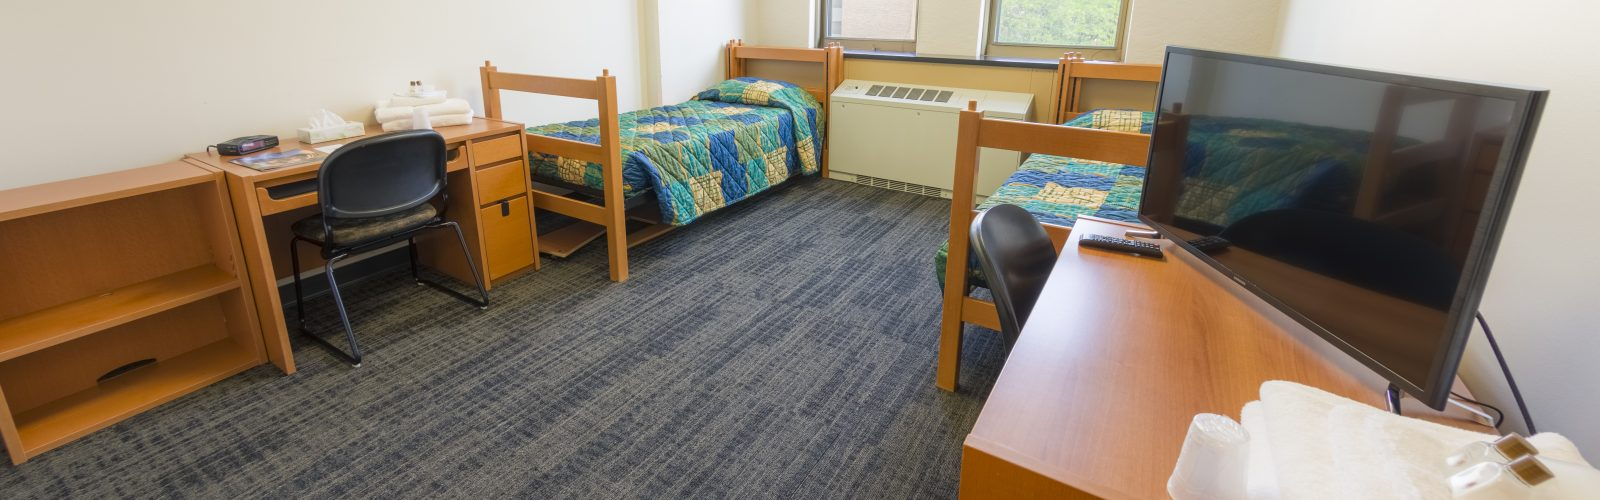 Platinum level room in Ogg Residence Hall